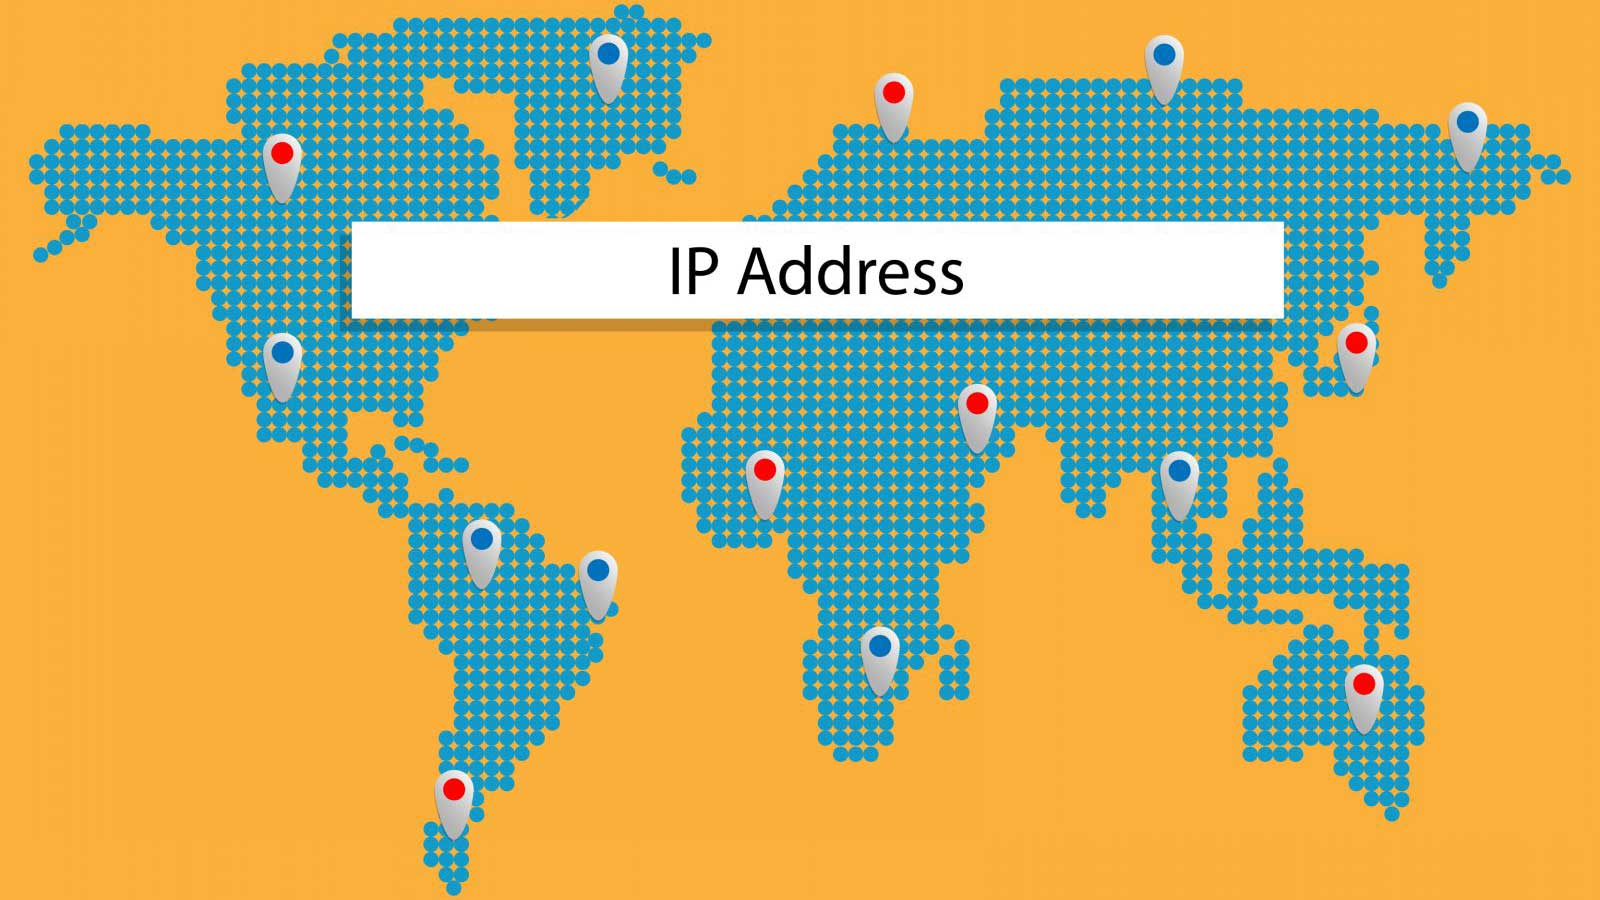 How Does IP Address Affect Site Performance and Security